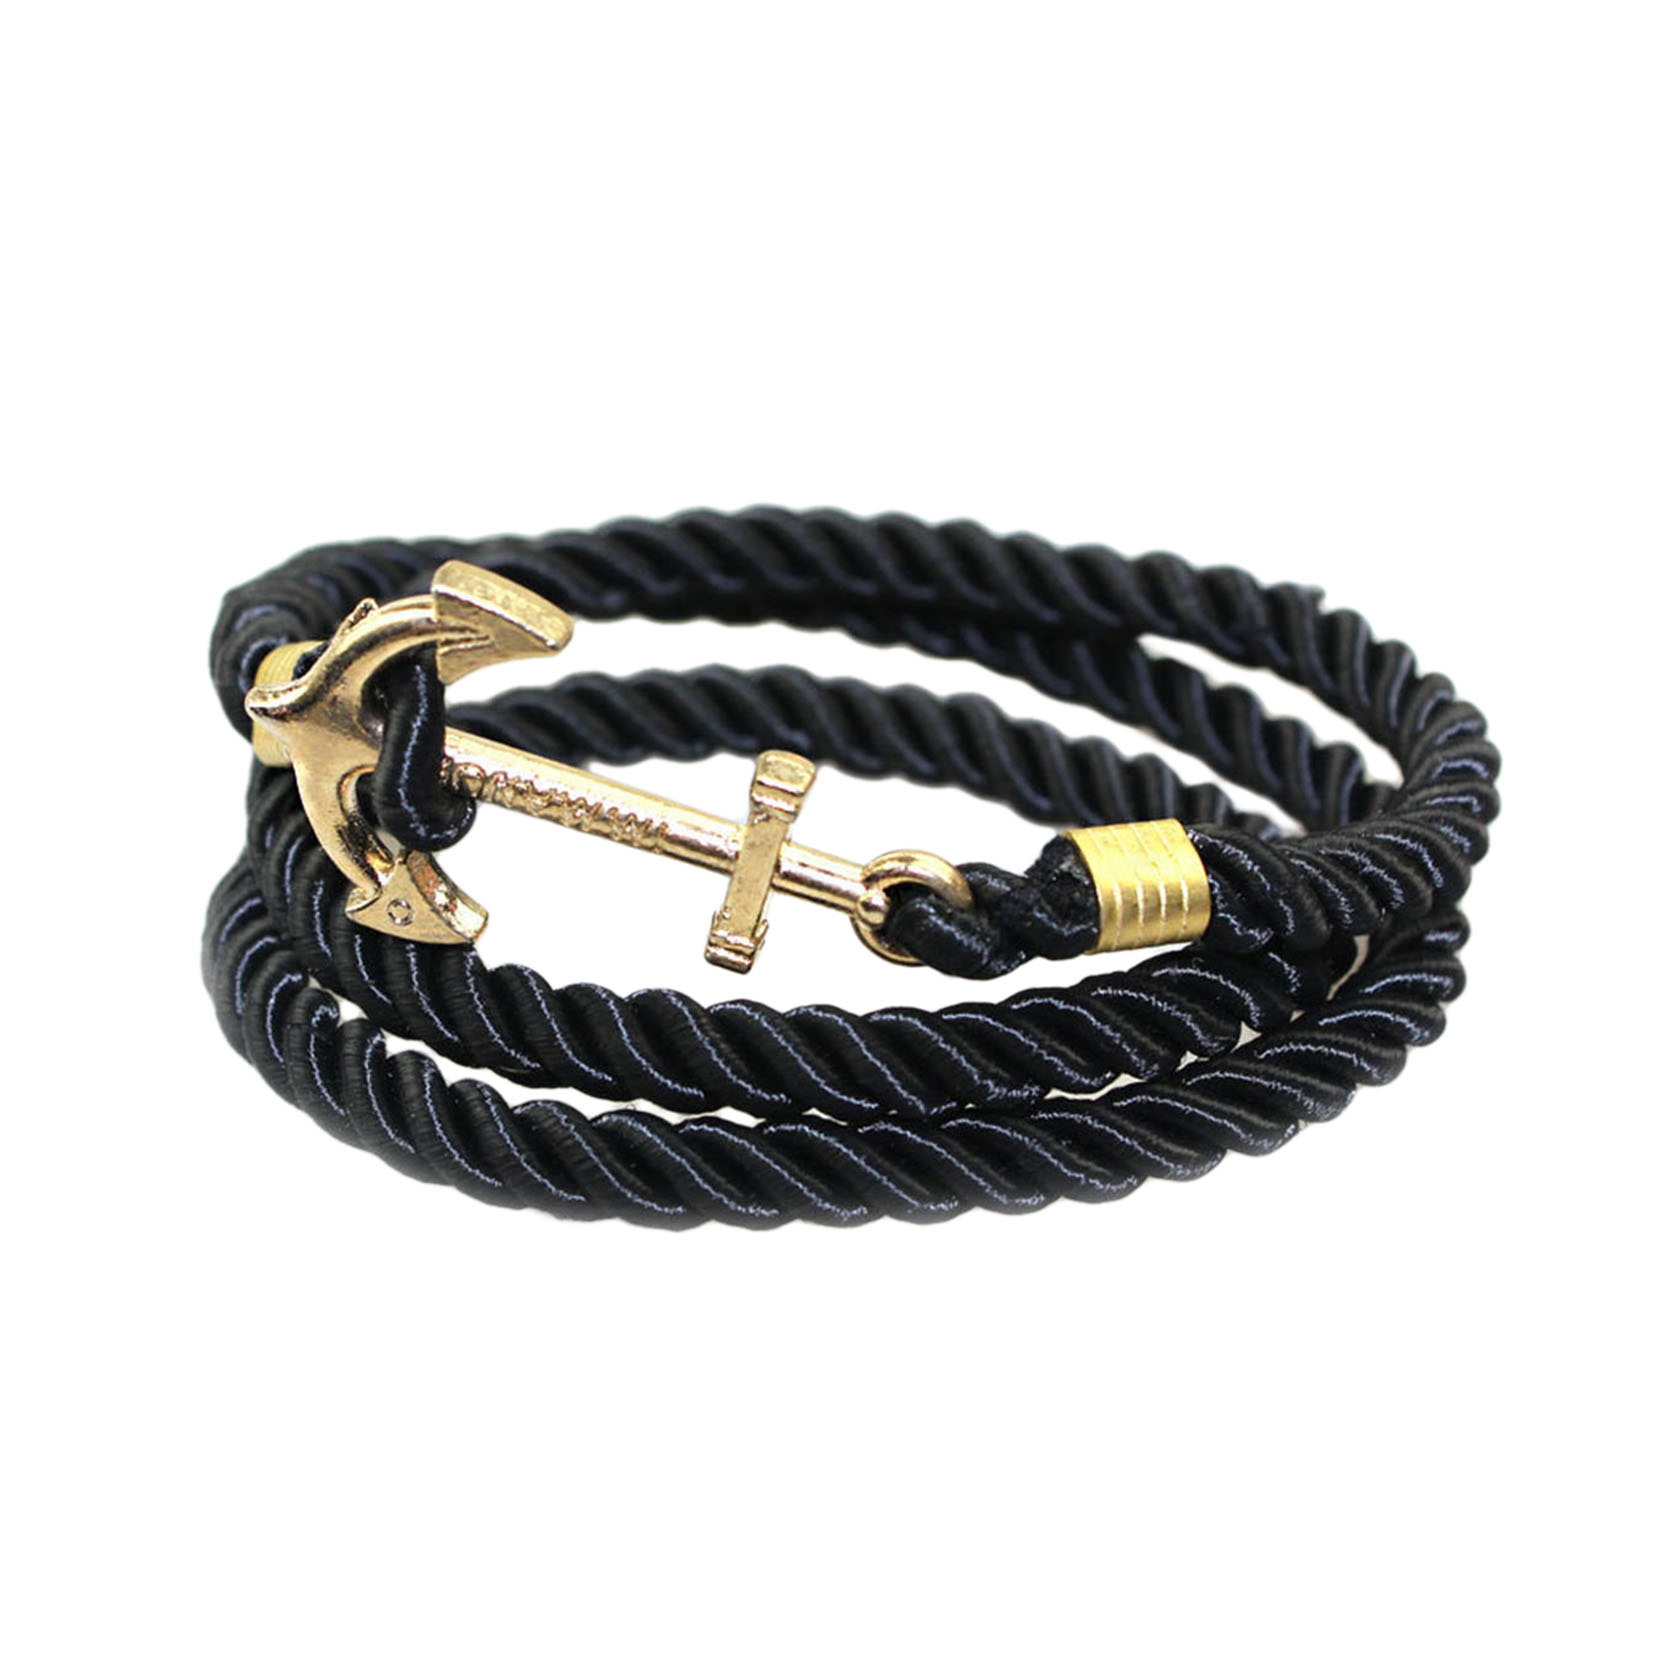 Retro Style Handmade Gold Color Anchors Shaped With Rope String Sufer Friendship  Charms Bracelet & Bangle